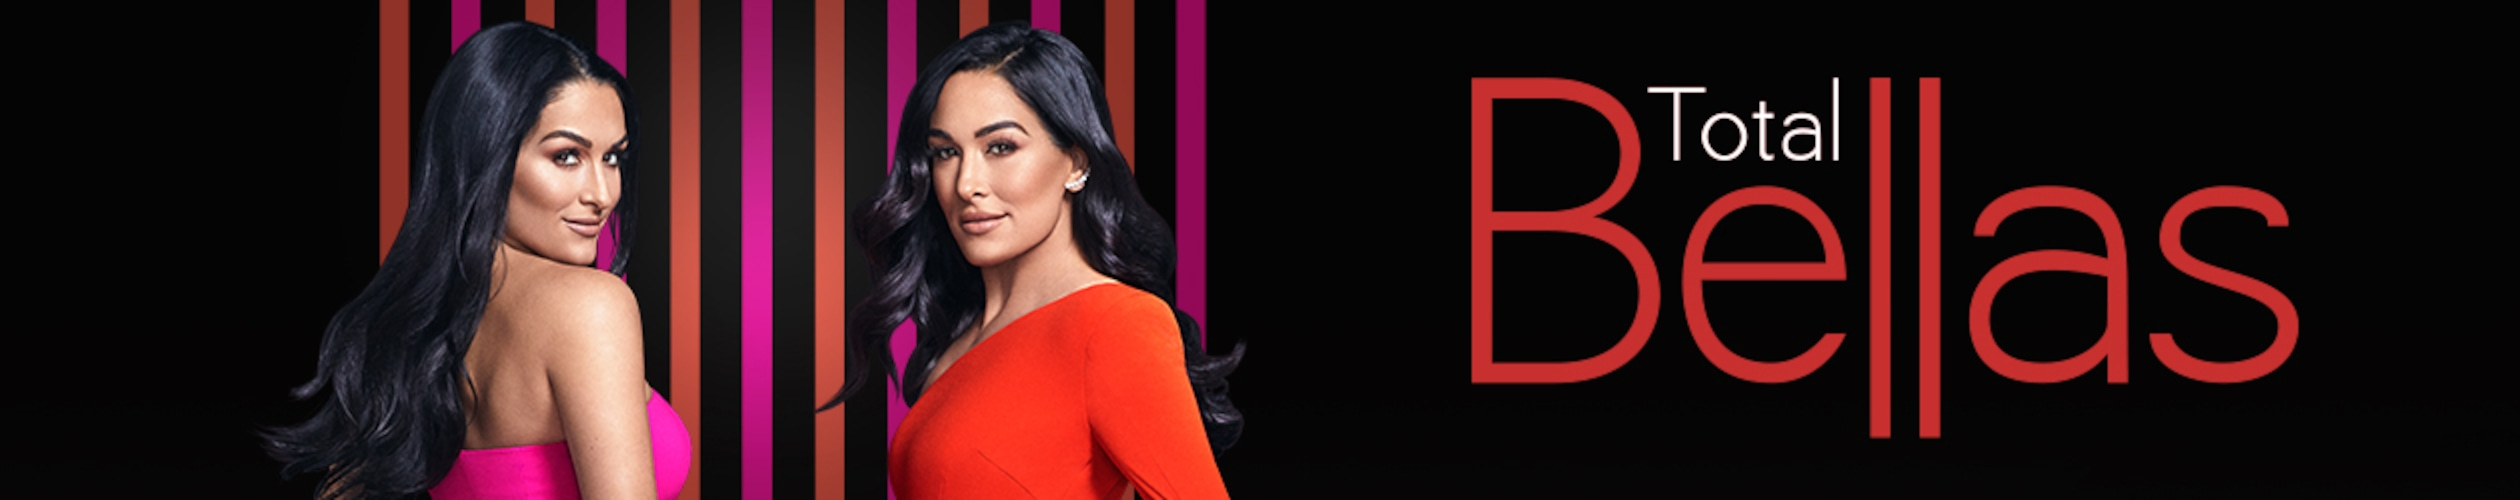 Total Bellas Season 5 Show Page Assets